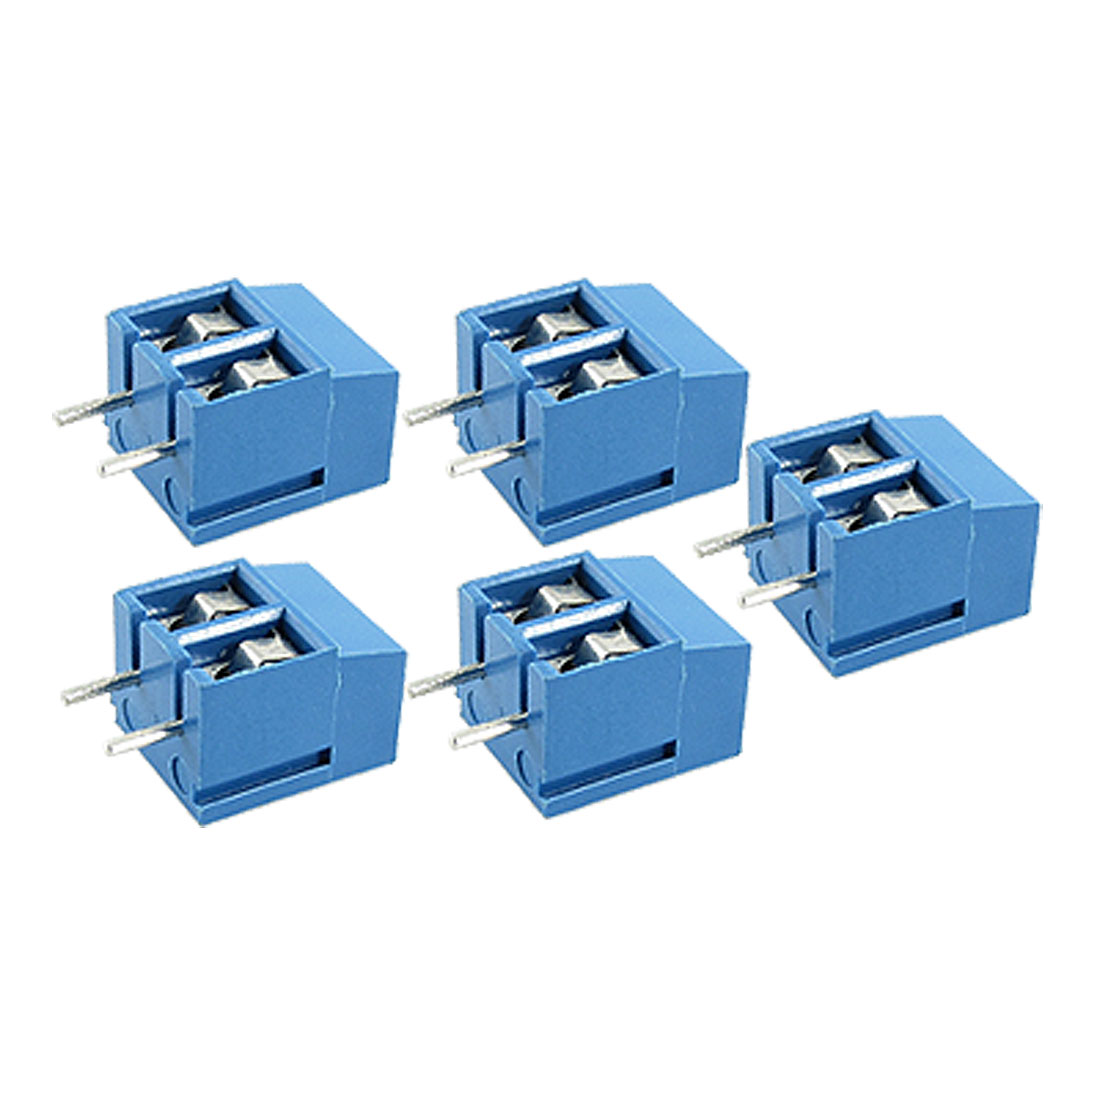 5 Pcs 2 pole 5.08mm PCB Universal Screw Terminal Block Connector 300V 10A